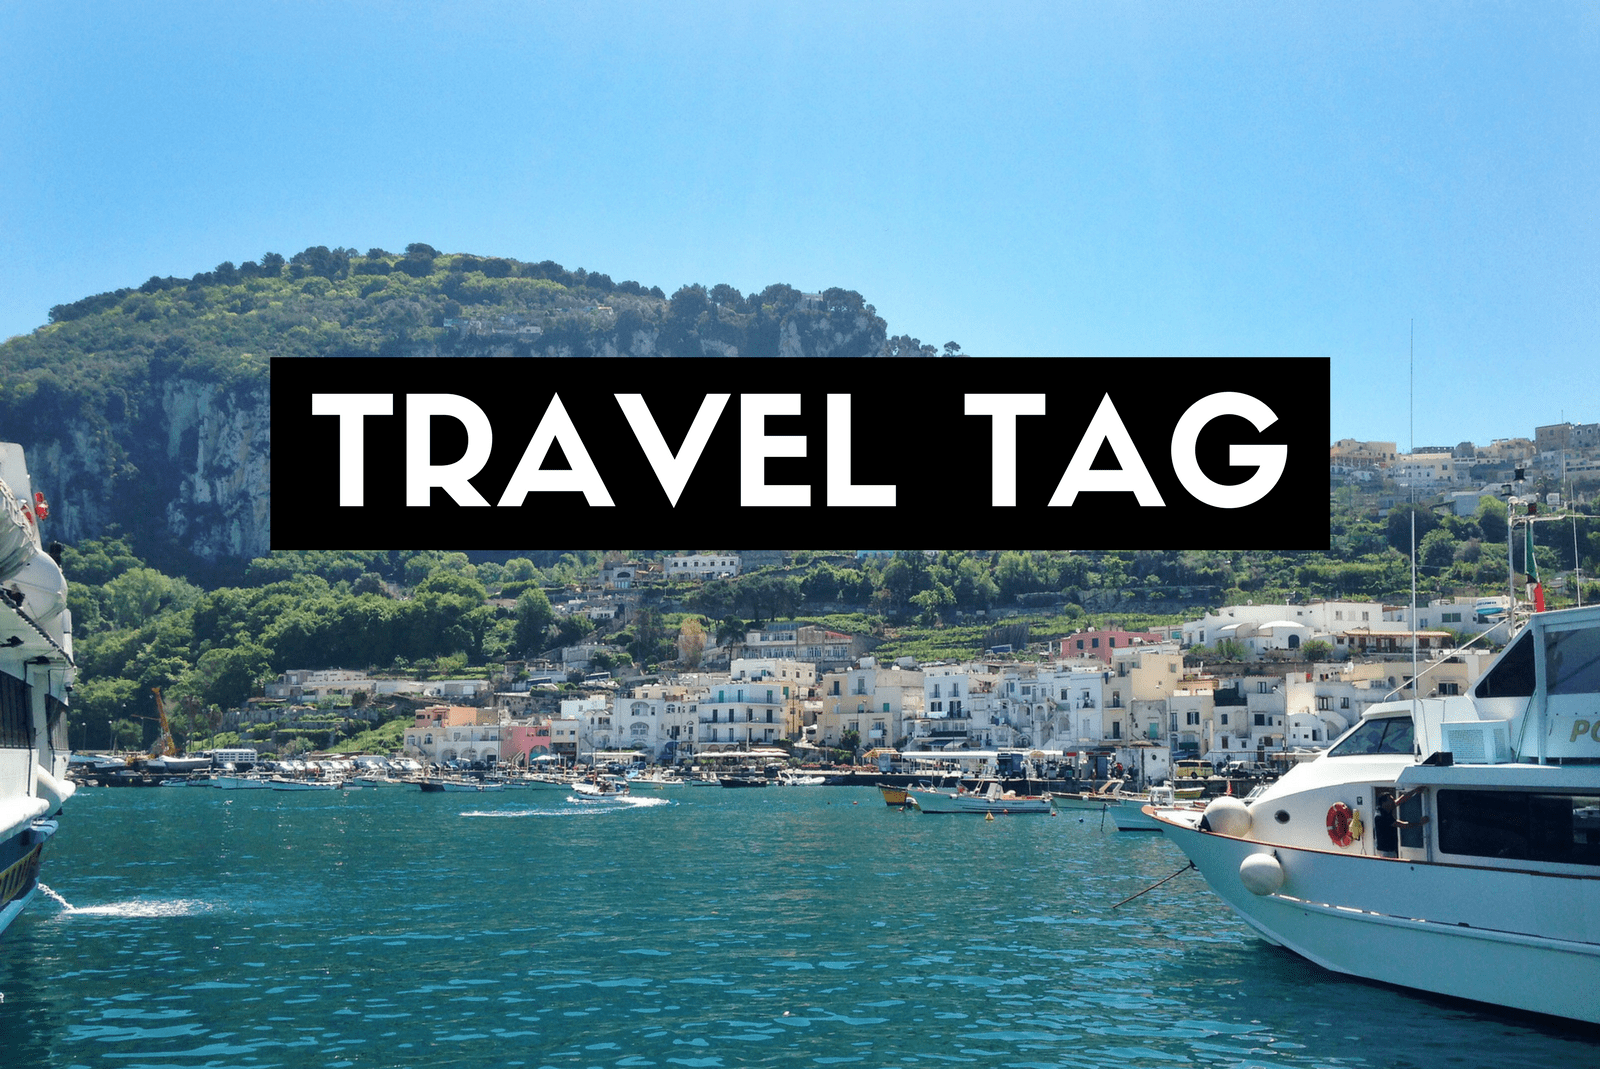 TRAVEL TAG